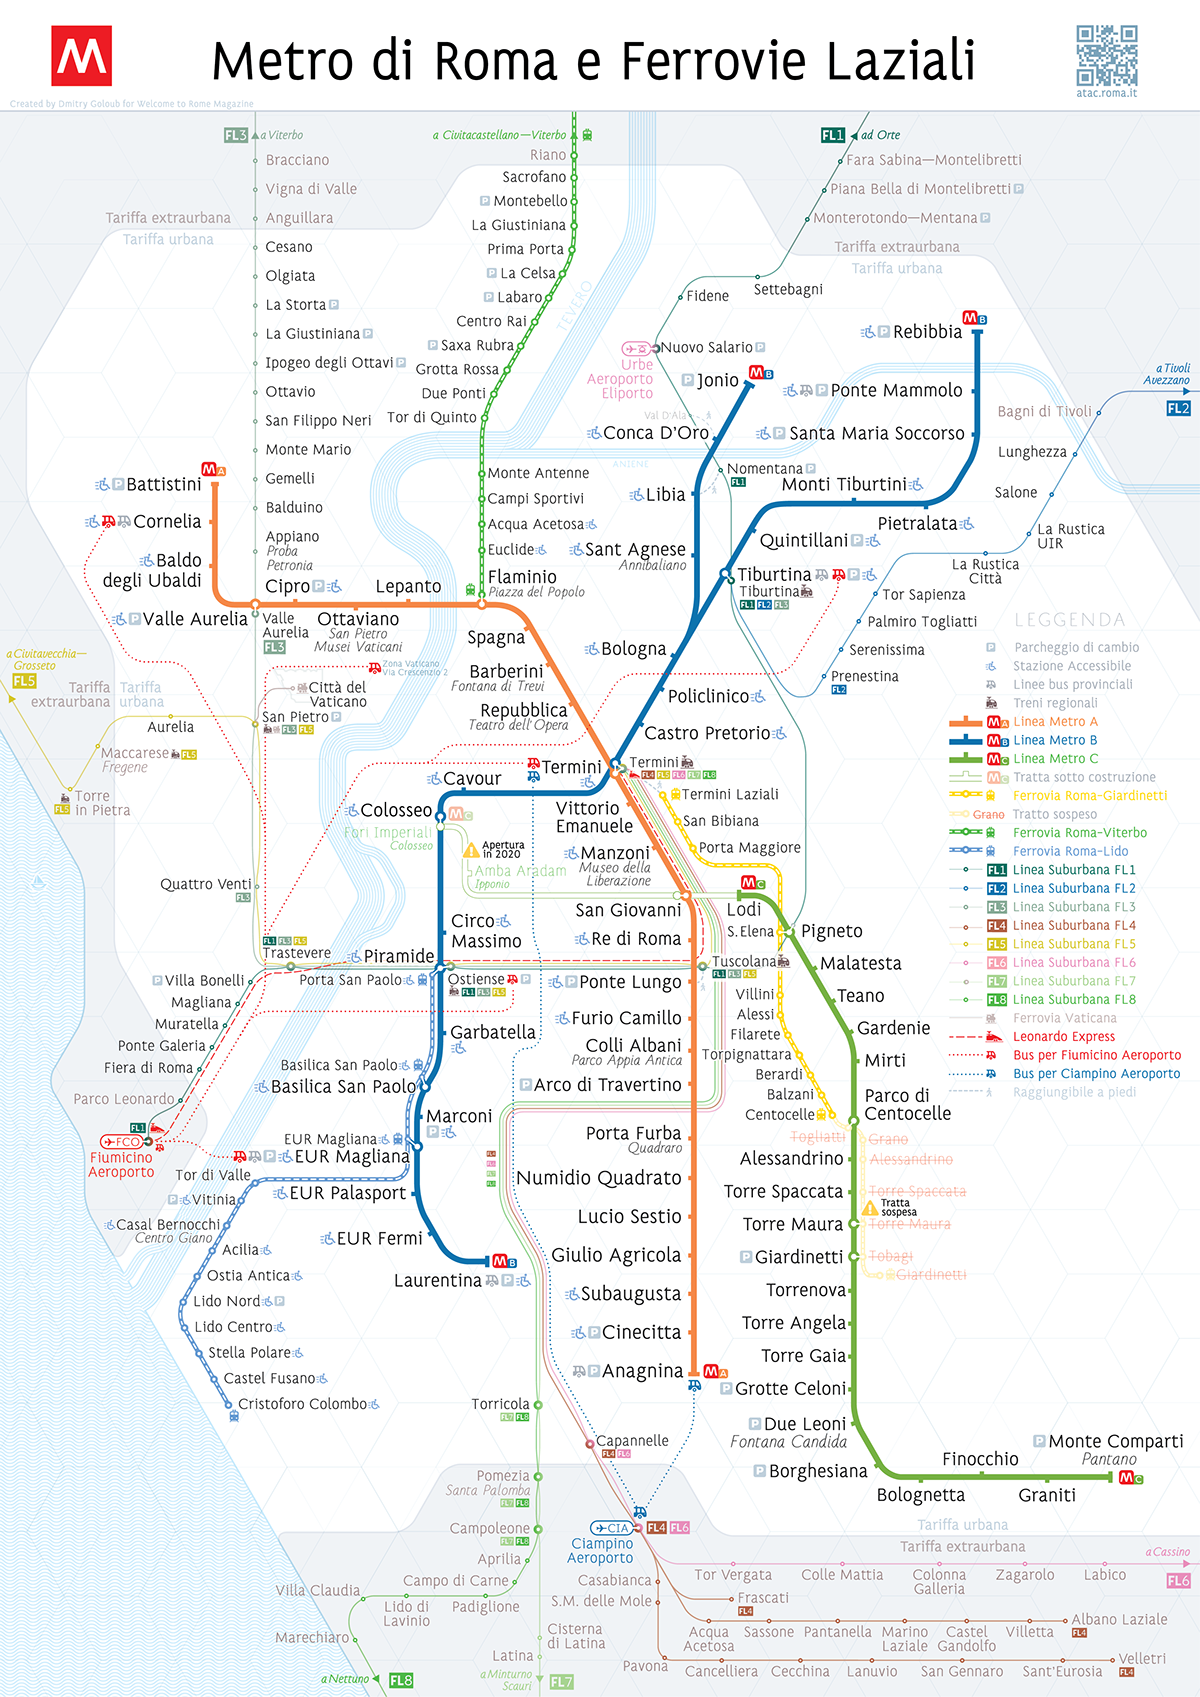 What The Roman Empire Would Look Like If It Was A Subway Map.Rome Metro Map On Behance